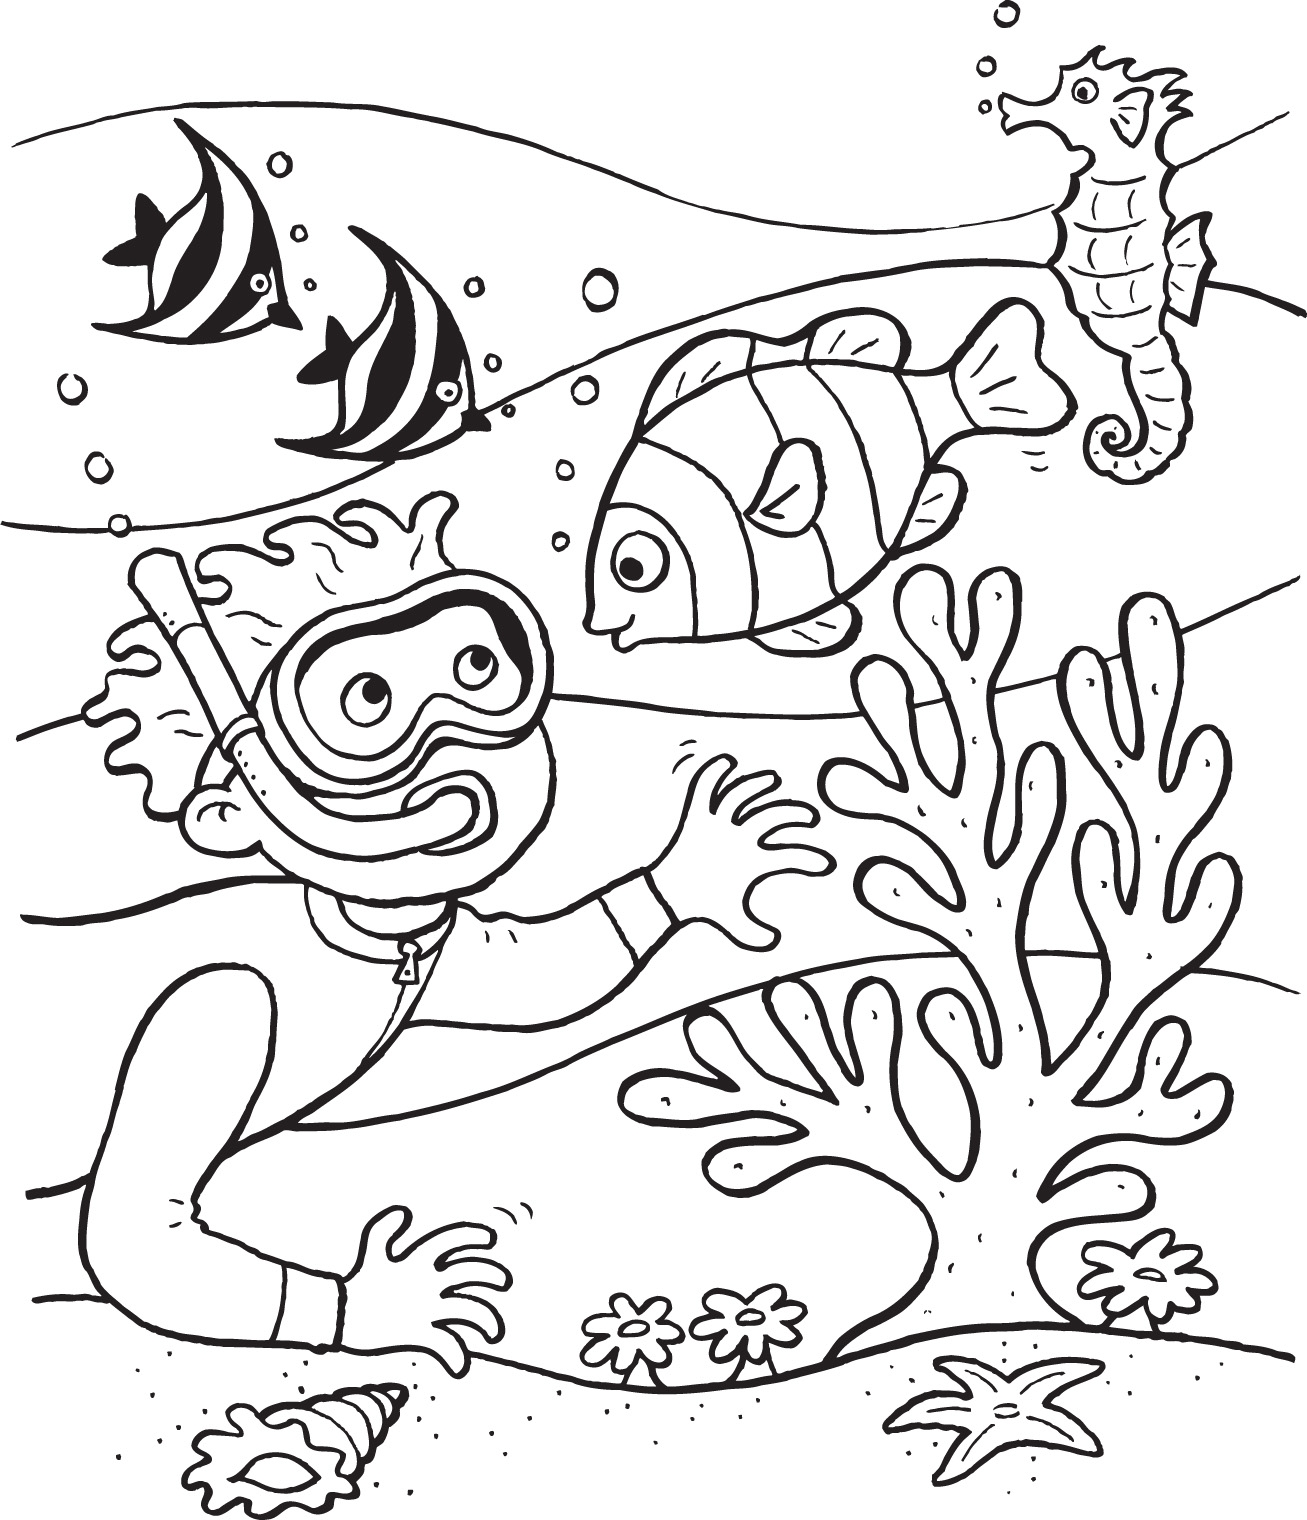 Sea Plants Coloring Pages At Getcolorings